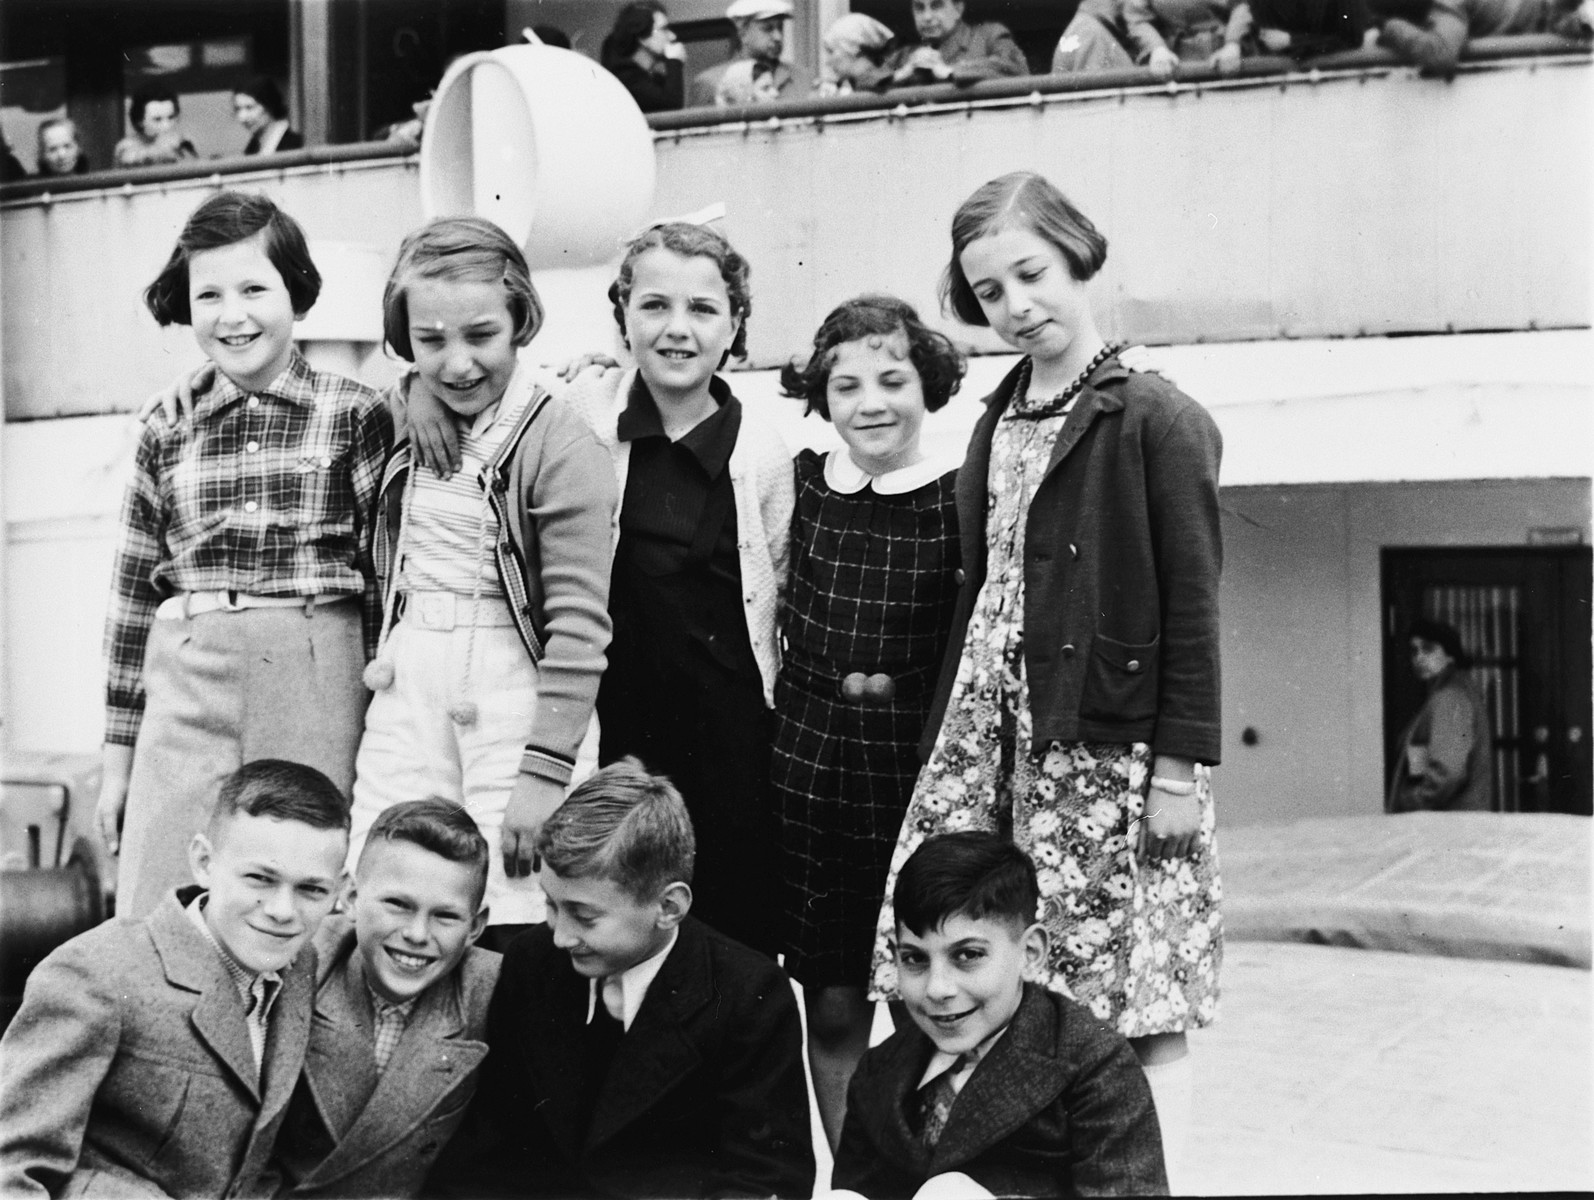 Group portrait of Jewish refugee children on board the St. Louis.   Among those pictured are Evelyn Klein (back row, center), Herbert Karliner (front row, left), Walter Karliner (front row, second from the left), and Harry Fuld (first row, far right).